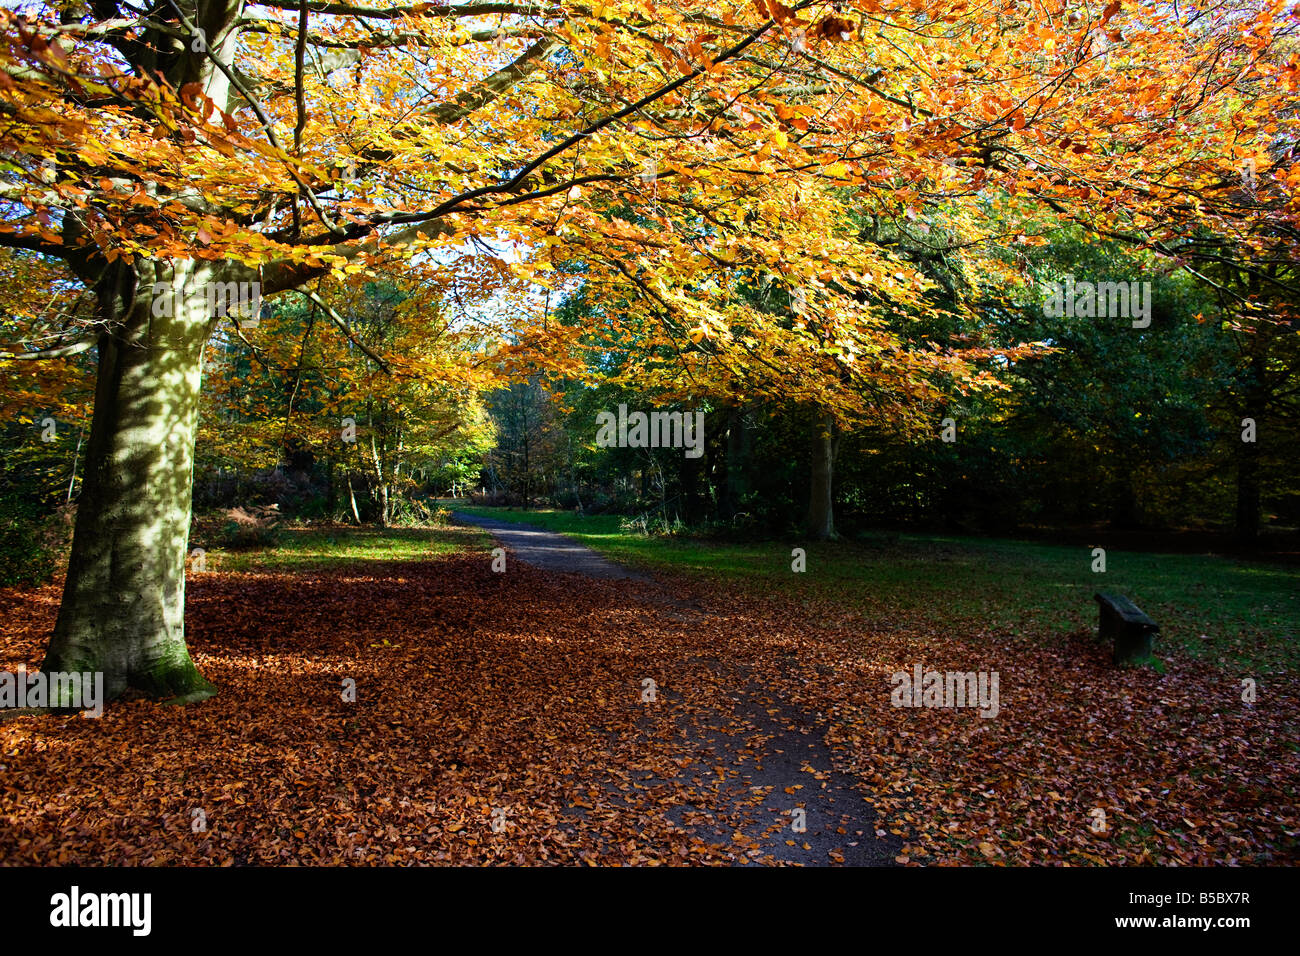 Autumn at the City of London owned Burnham Beeches in Buckinghamshire. Fallen leaves cover a small road through - Stock Image